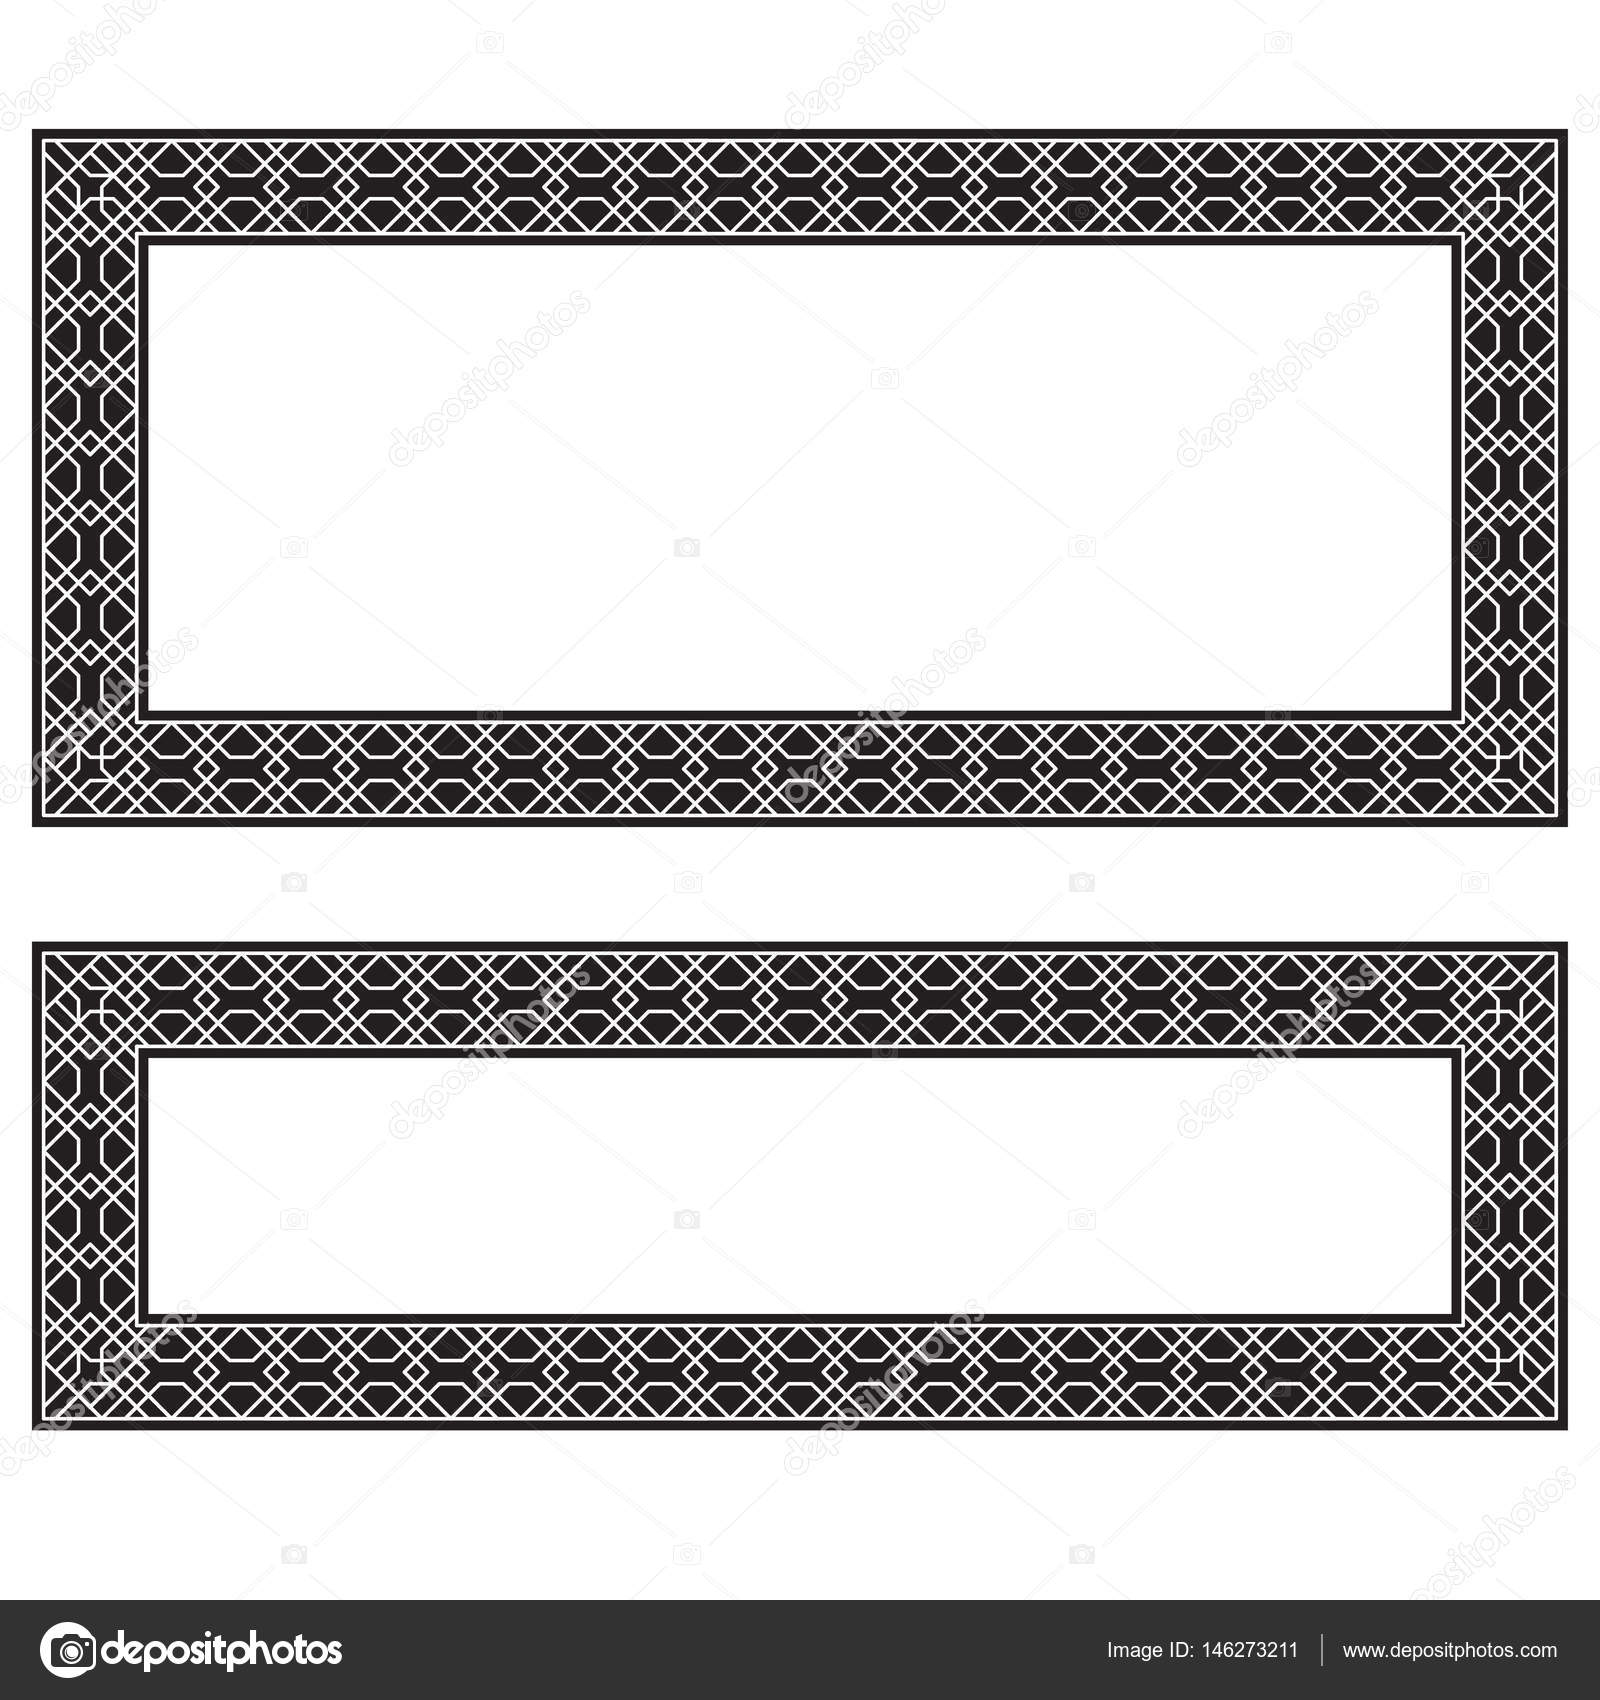 Rectangular black and white frames, geometric pattern. Different ...